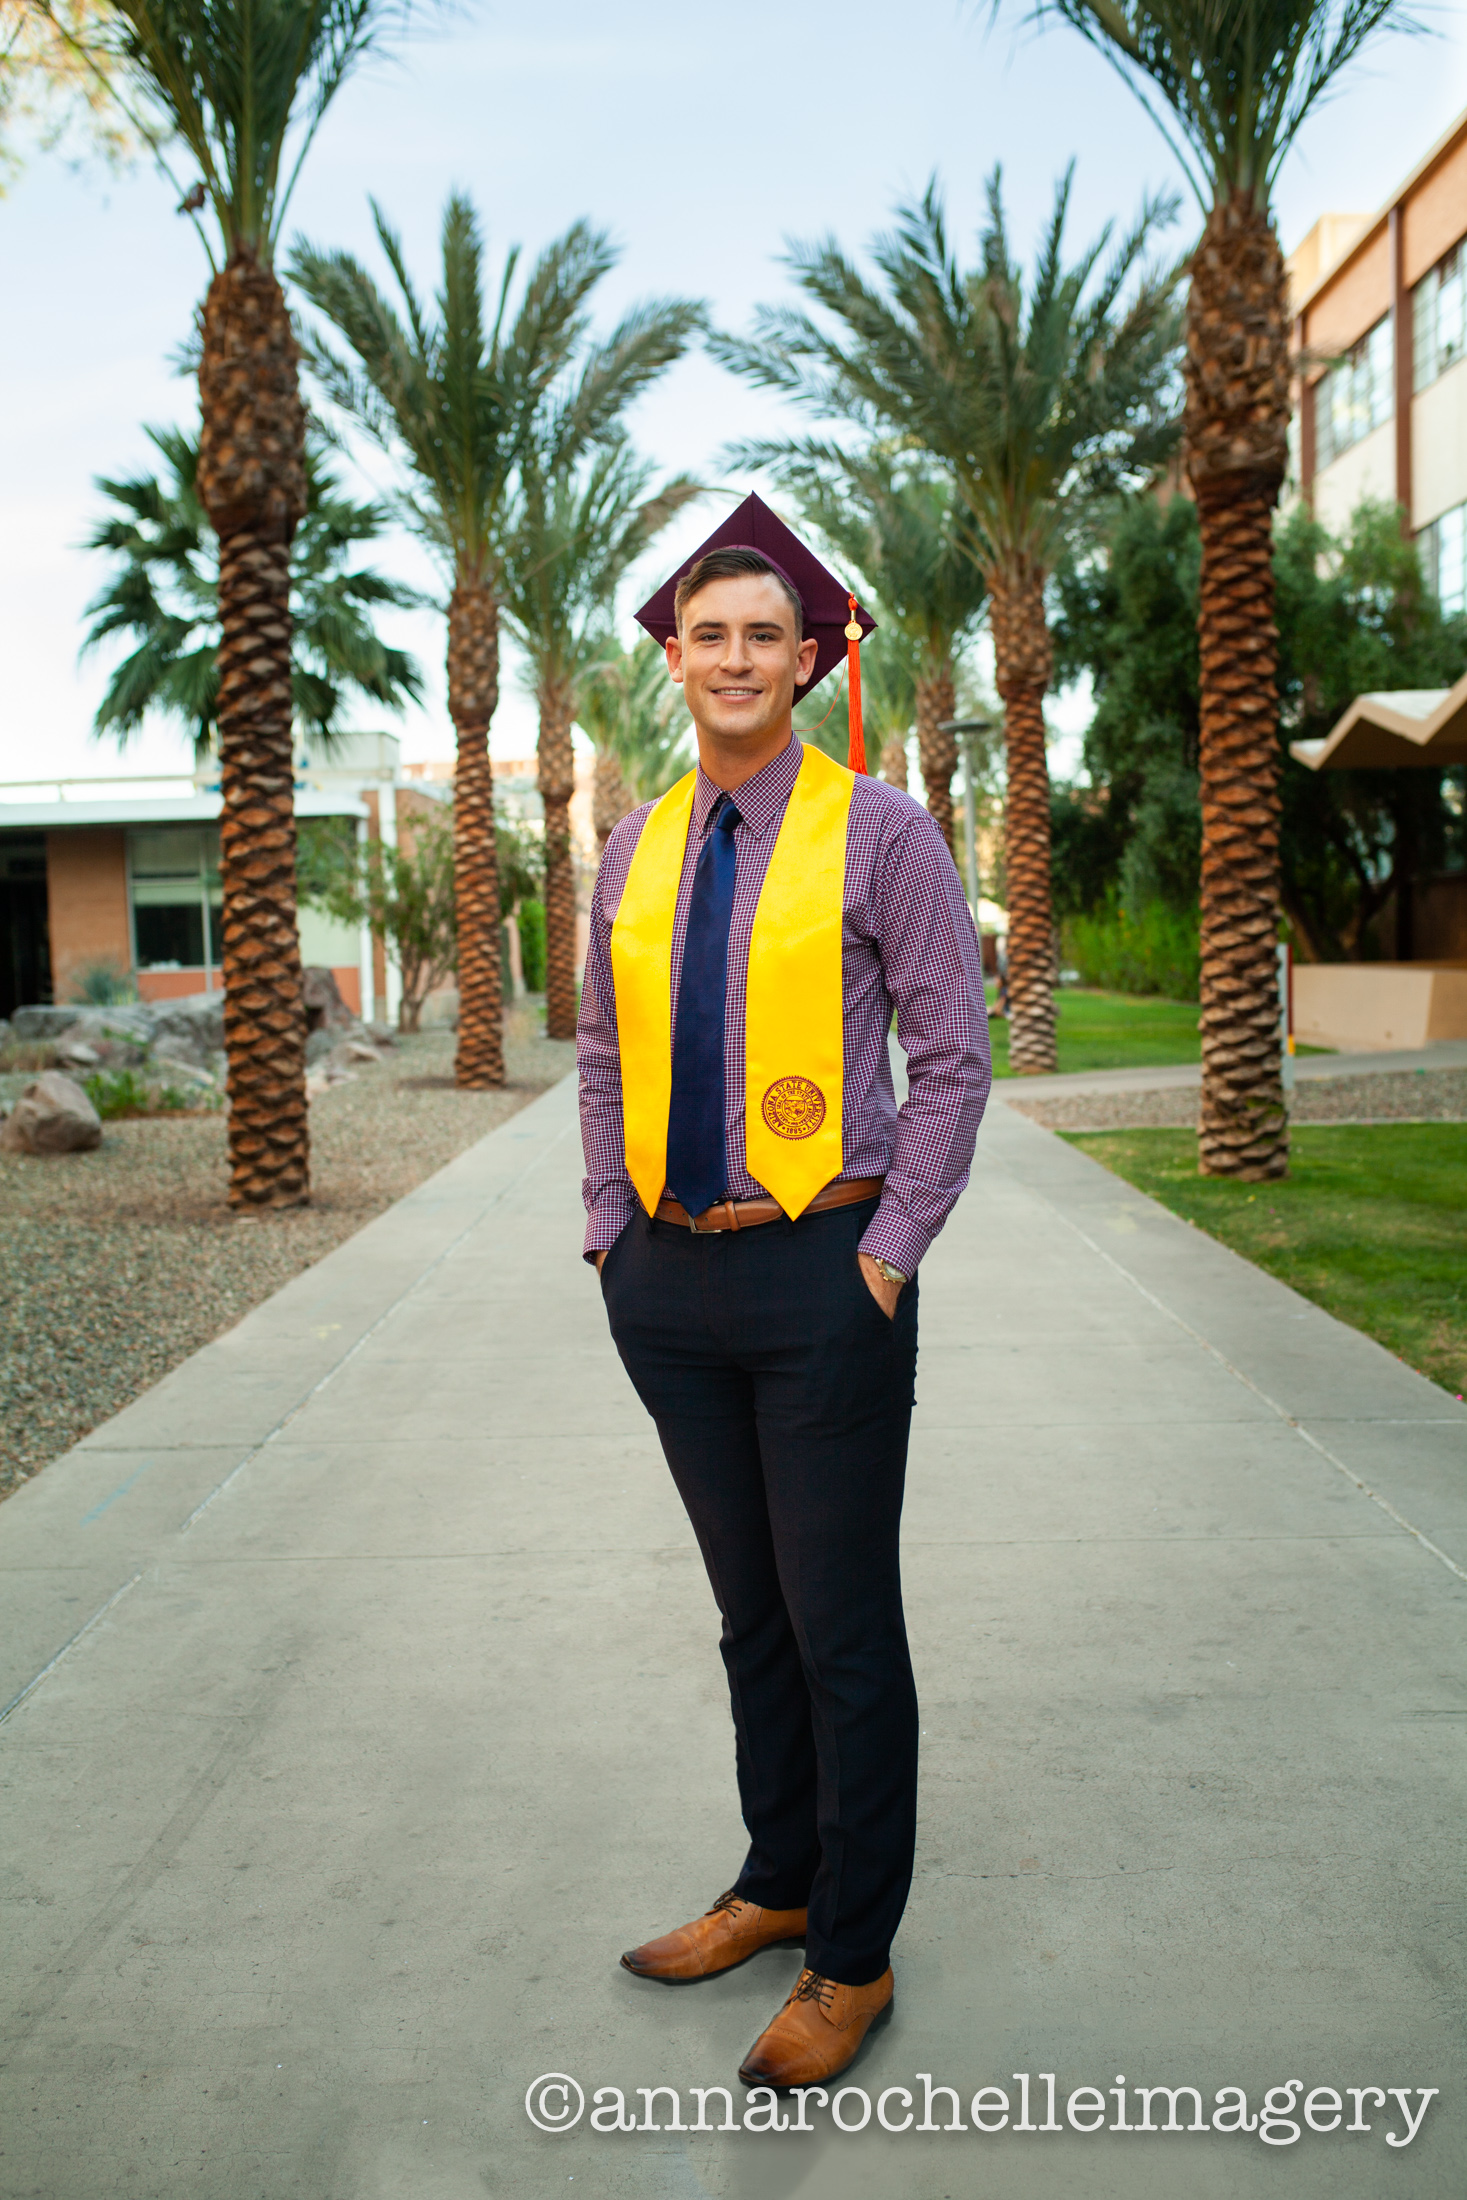 palm-walk-asu-senior-men-standing-portrait.jpg